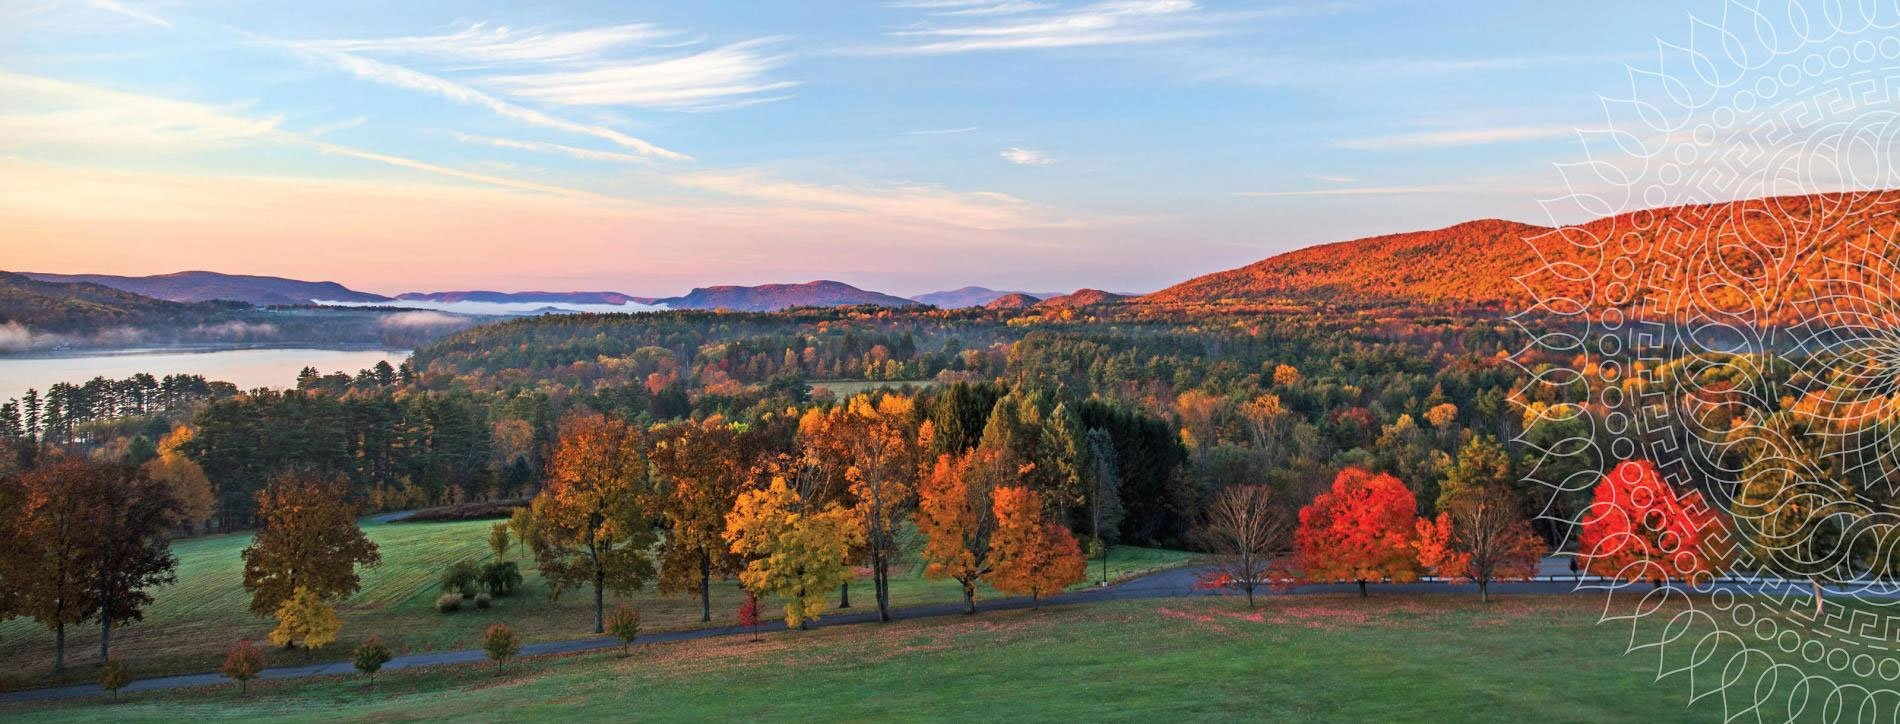 Kripalu yoga and meditation, Stockbridge, MA